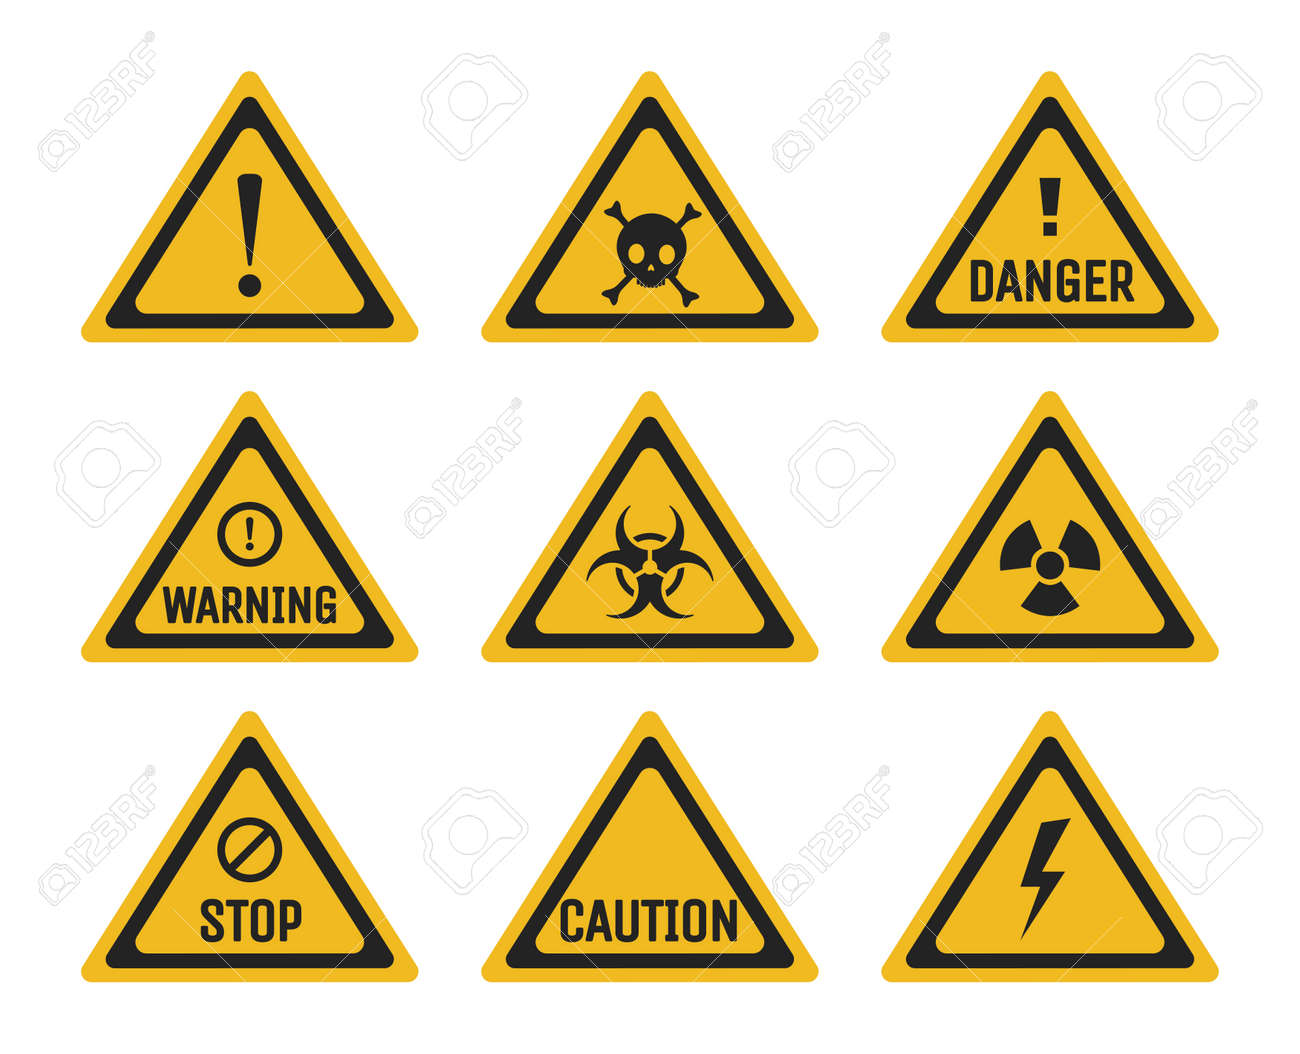 Set of prohibition and warning signs vector flat illustration. Danger, stop, and caution pictograms. - 173869137